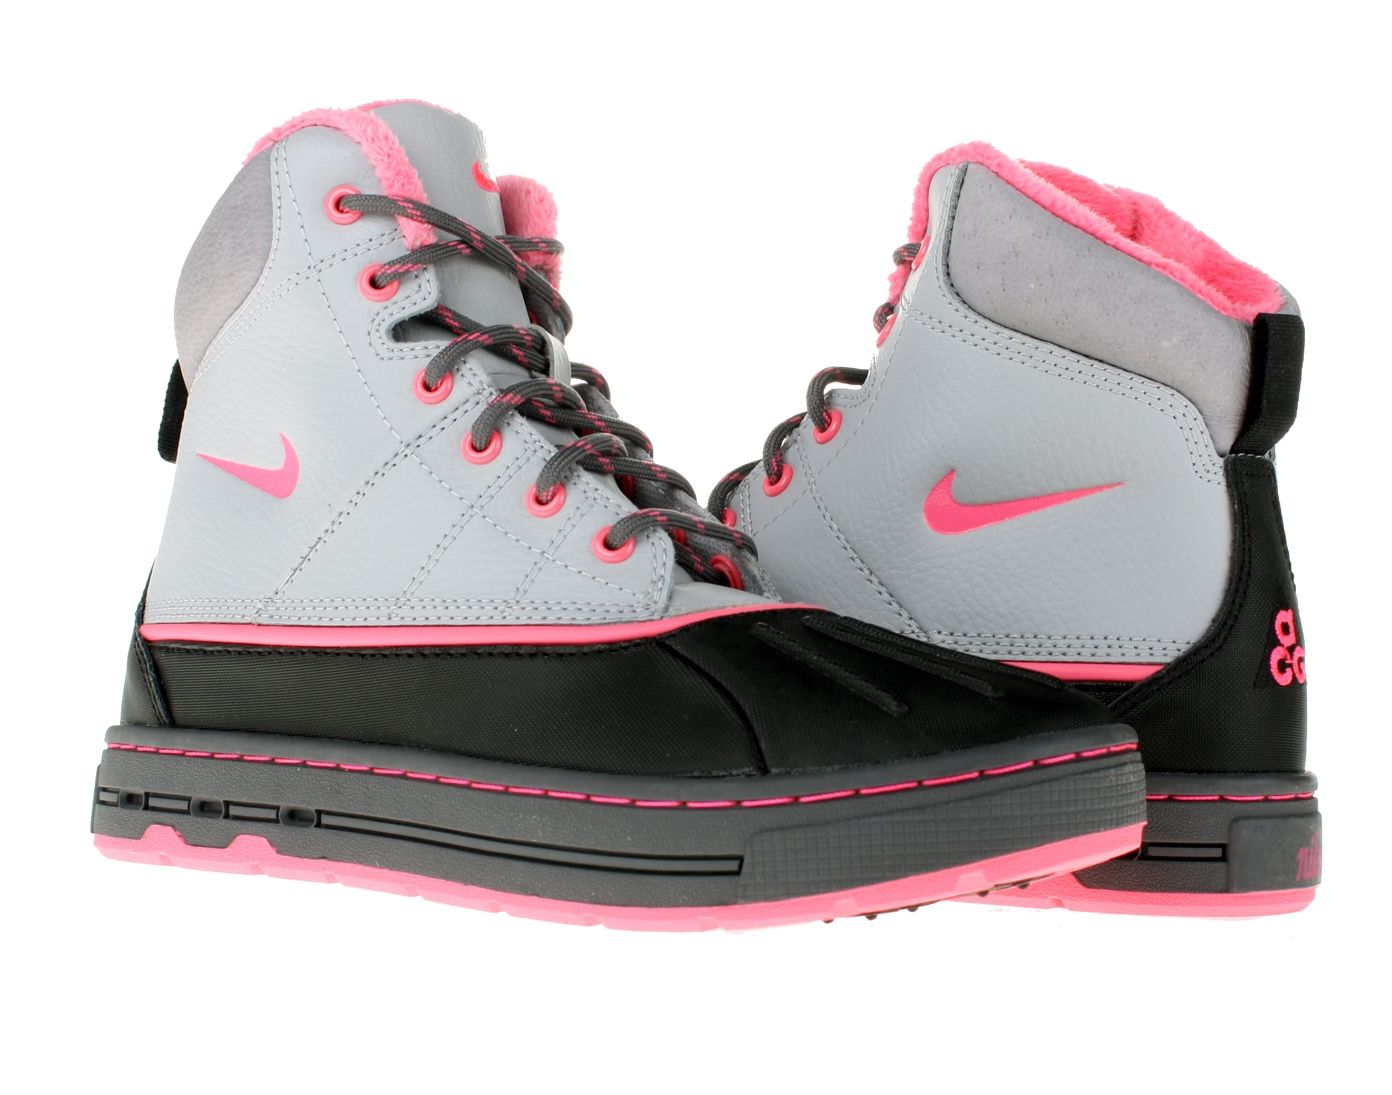 nike boots for product boots nike boots